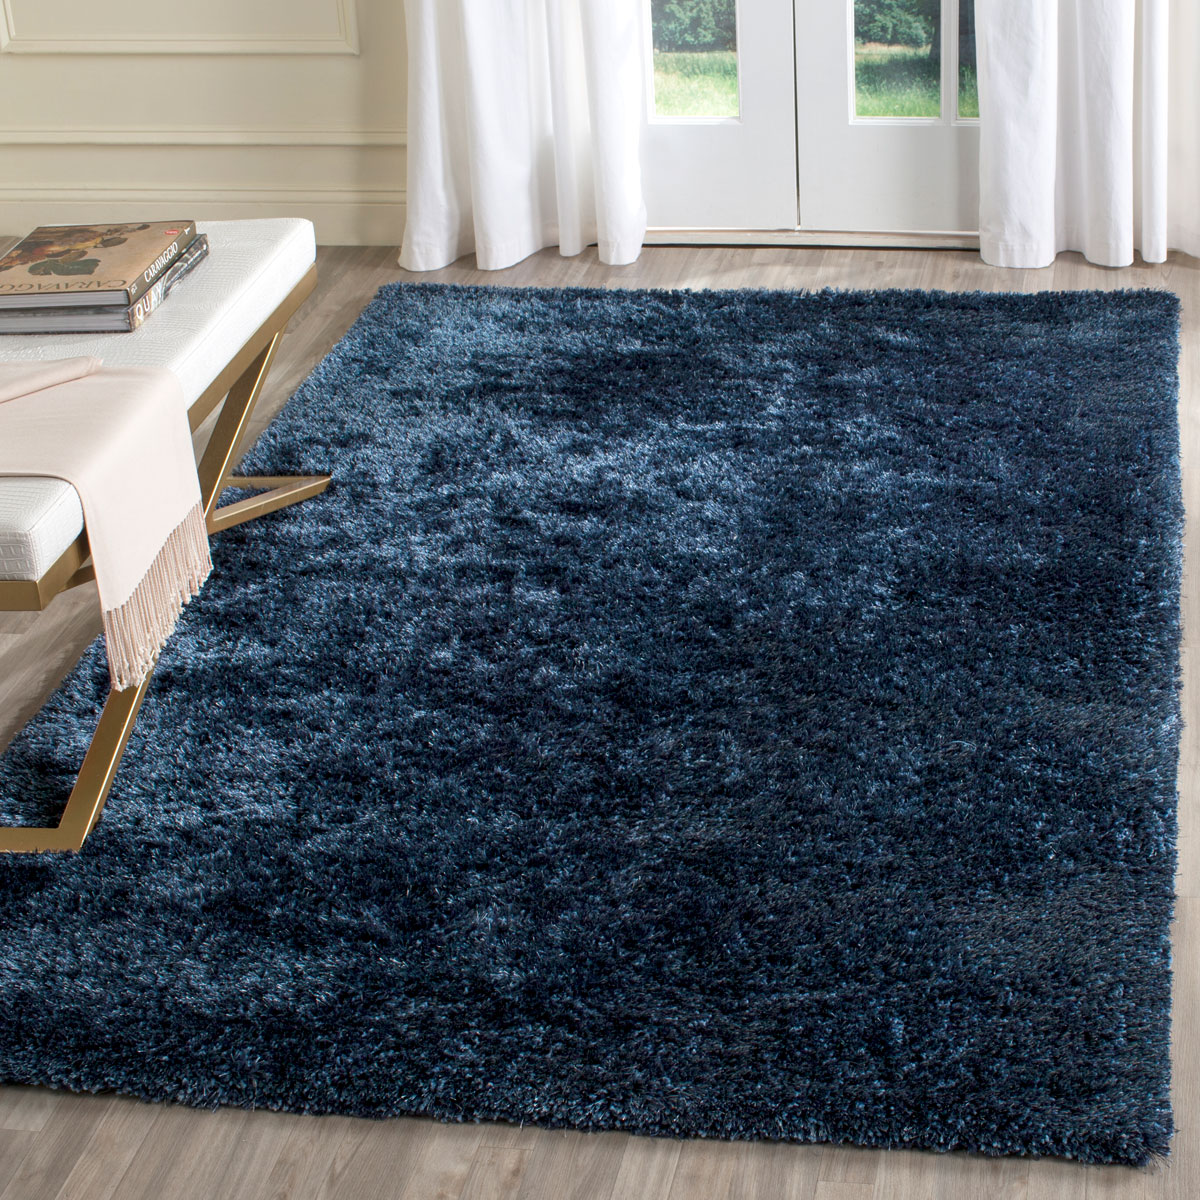 Plush Navy Blue Shag Toronto Collection Safavieh Com